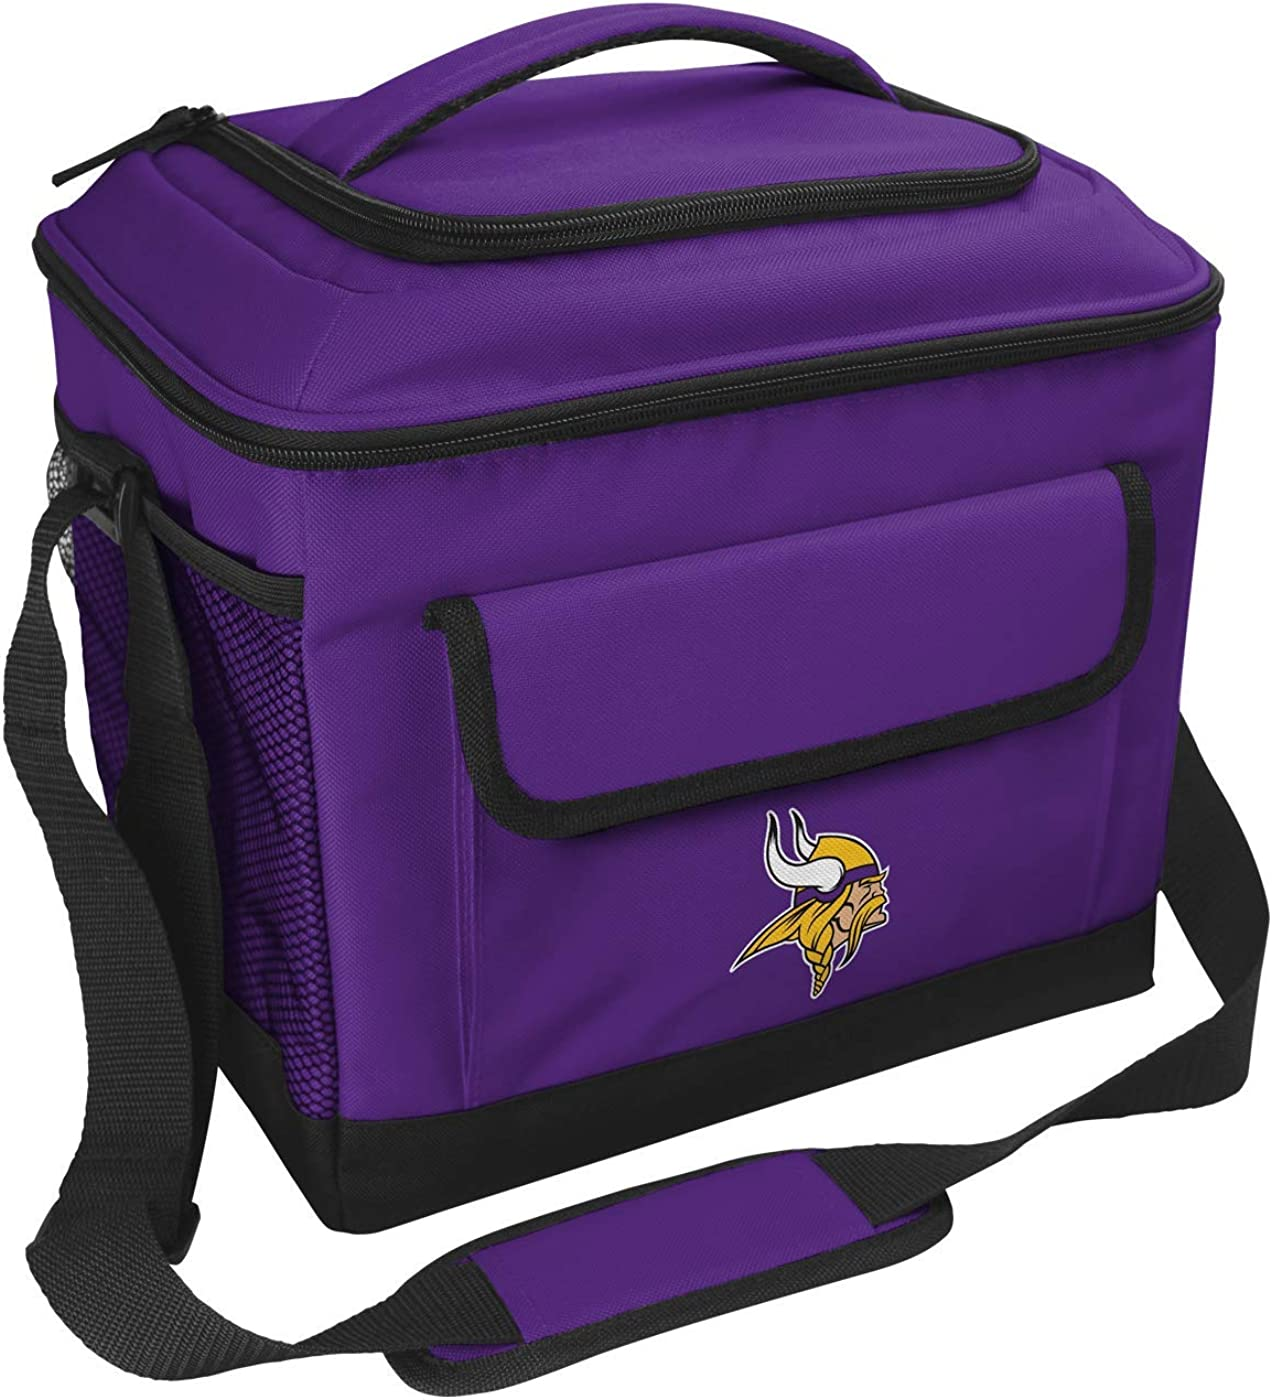 Rawlings NFL Soft-Sided Insulated Cooler 24-Can Capacity (ALL TEAM OPTIONS)